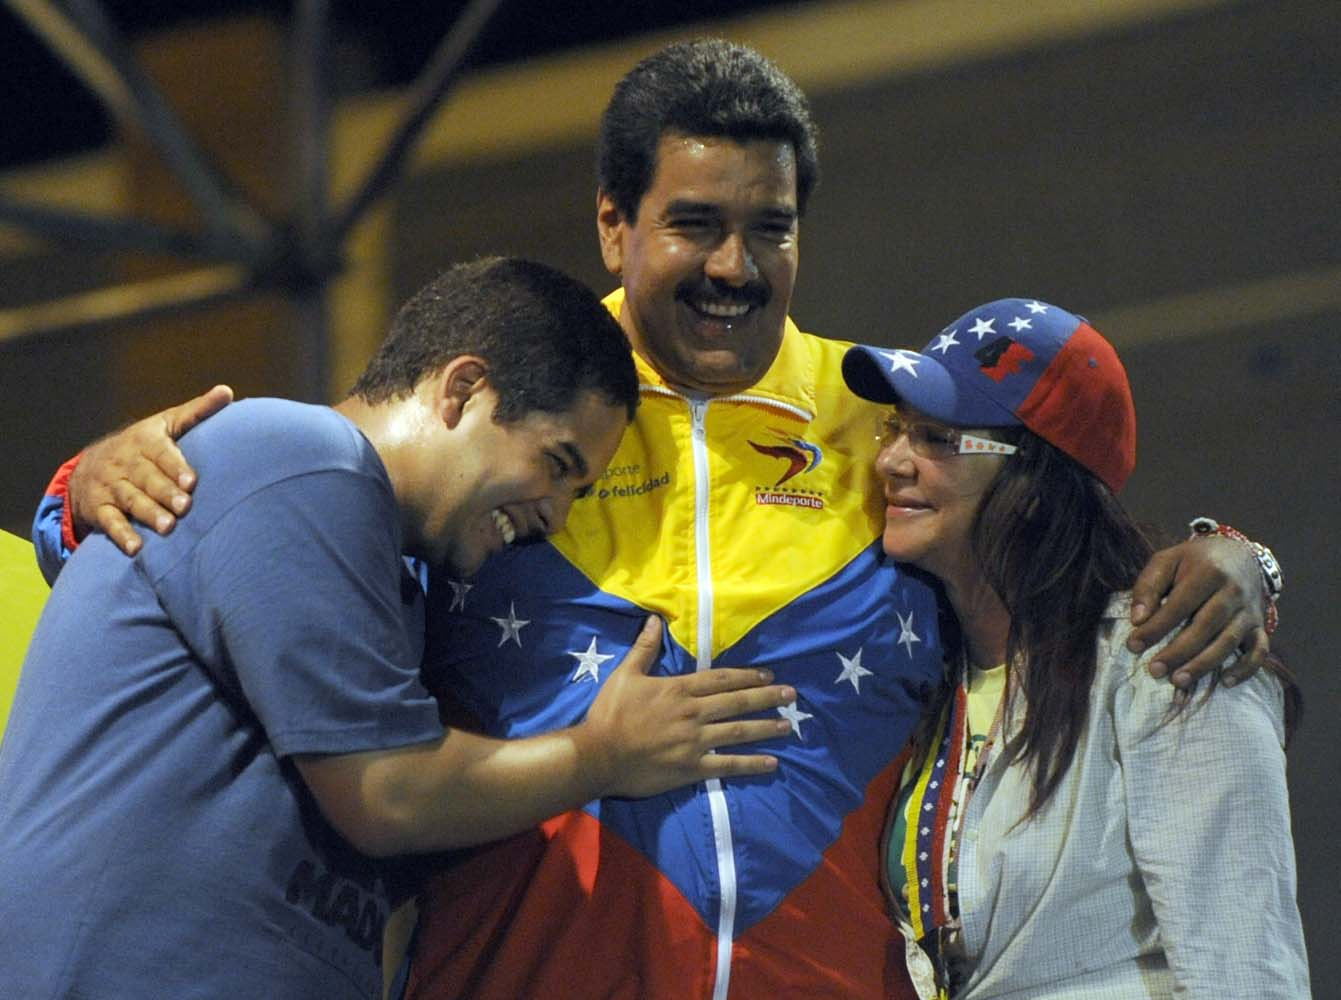 """(FILES) This file picture taken on April 6, 2013 shows Venezuelan acting President Nicolas Maduro (C) embracing his wife Cilia Flores (L) and son Nicolas Maduro during a campaign rally in Puerto Ordaz, Bolivar state, Venezuela. Nicolas Ernesto Maduro Guerra, """"Nicolasito"""", the President's son is an economist and candidate to July 31, 2017 """"constituent assembly"""". / AFP PHOTO / JUAN BARRETO"""